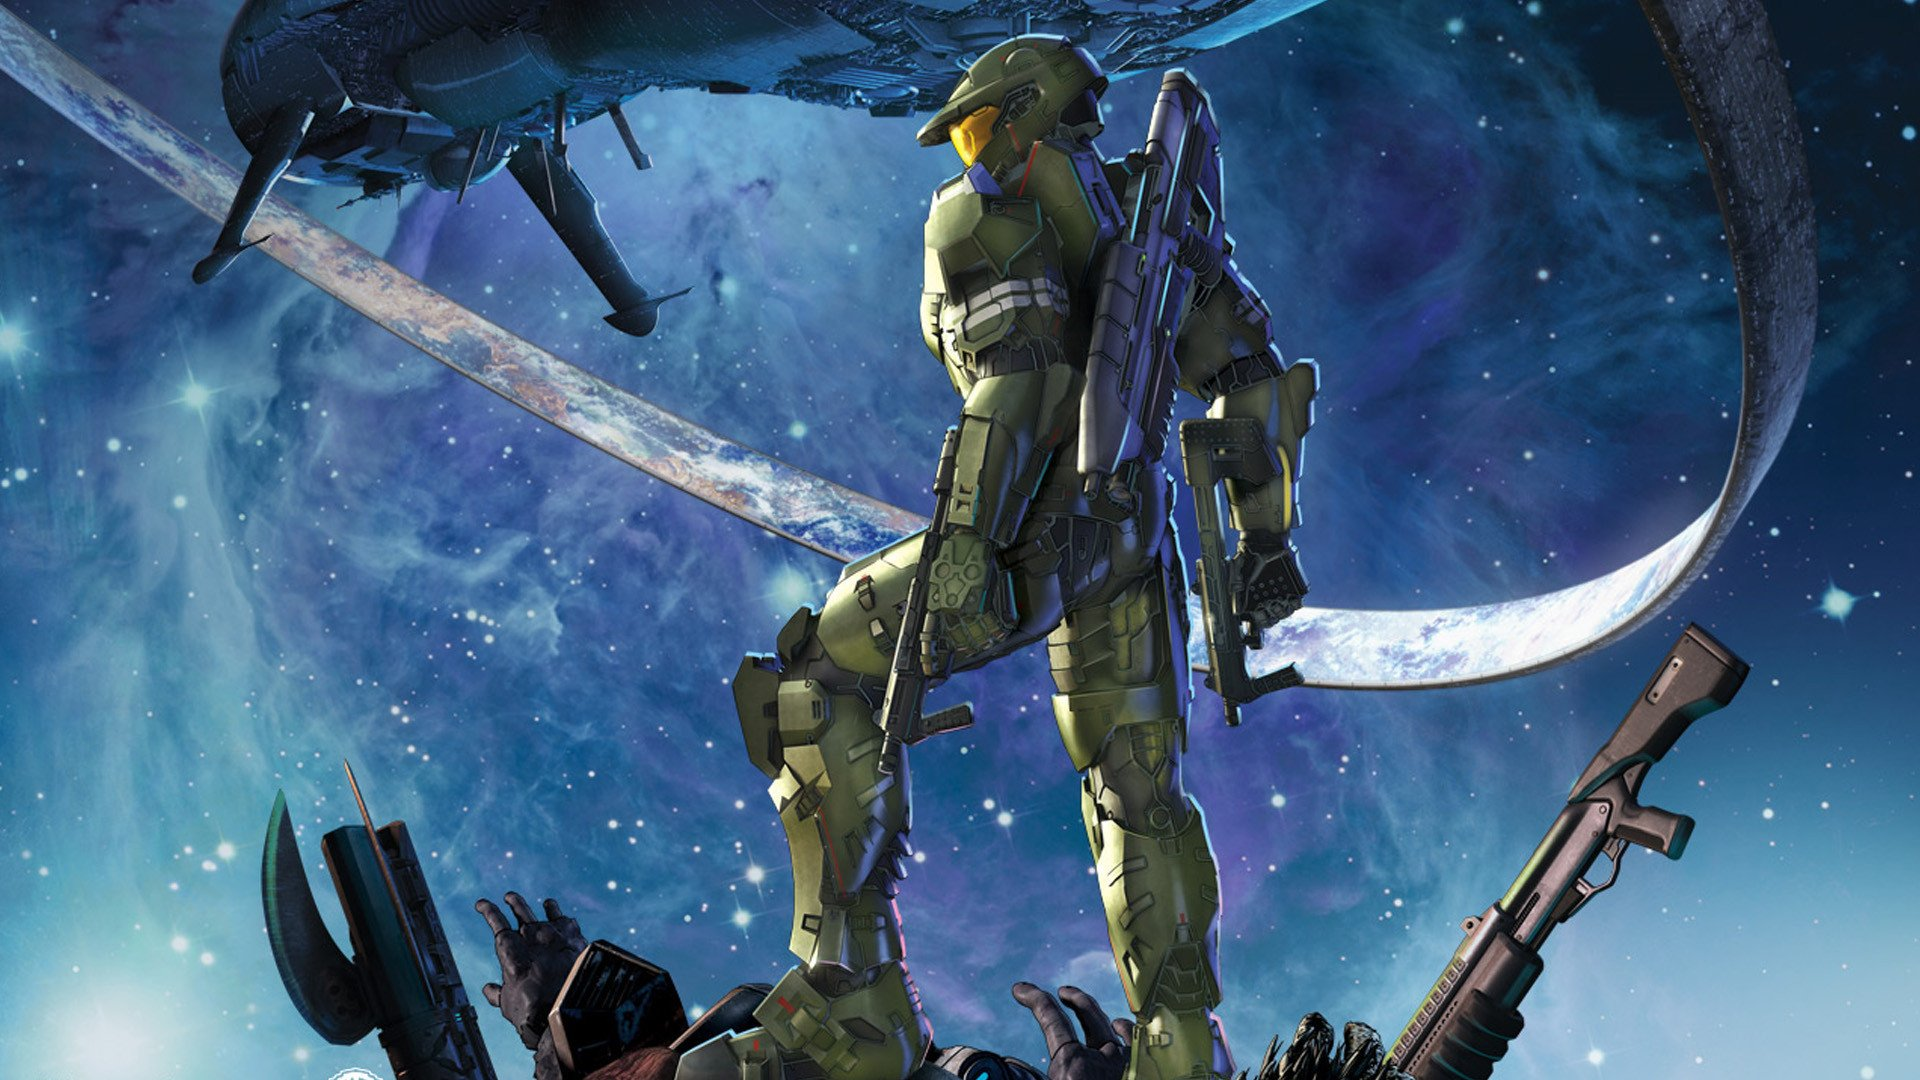 Halo Legends Wallpaper